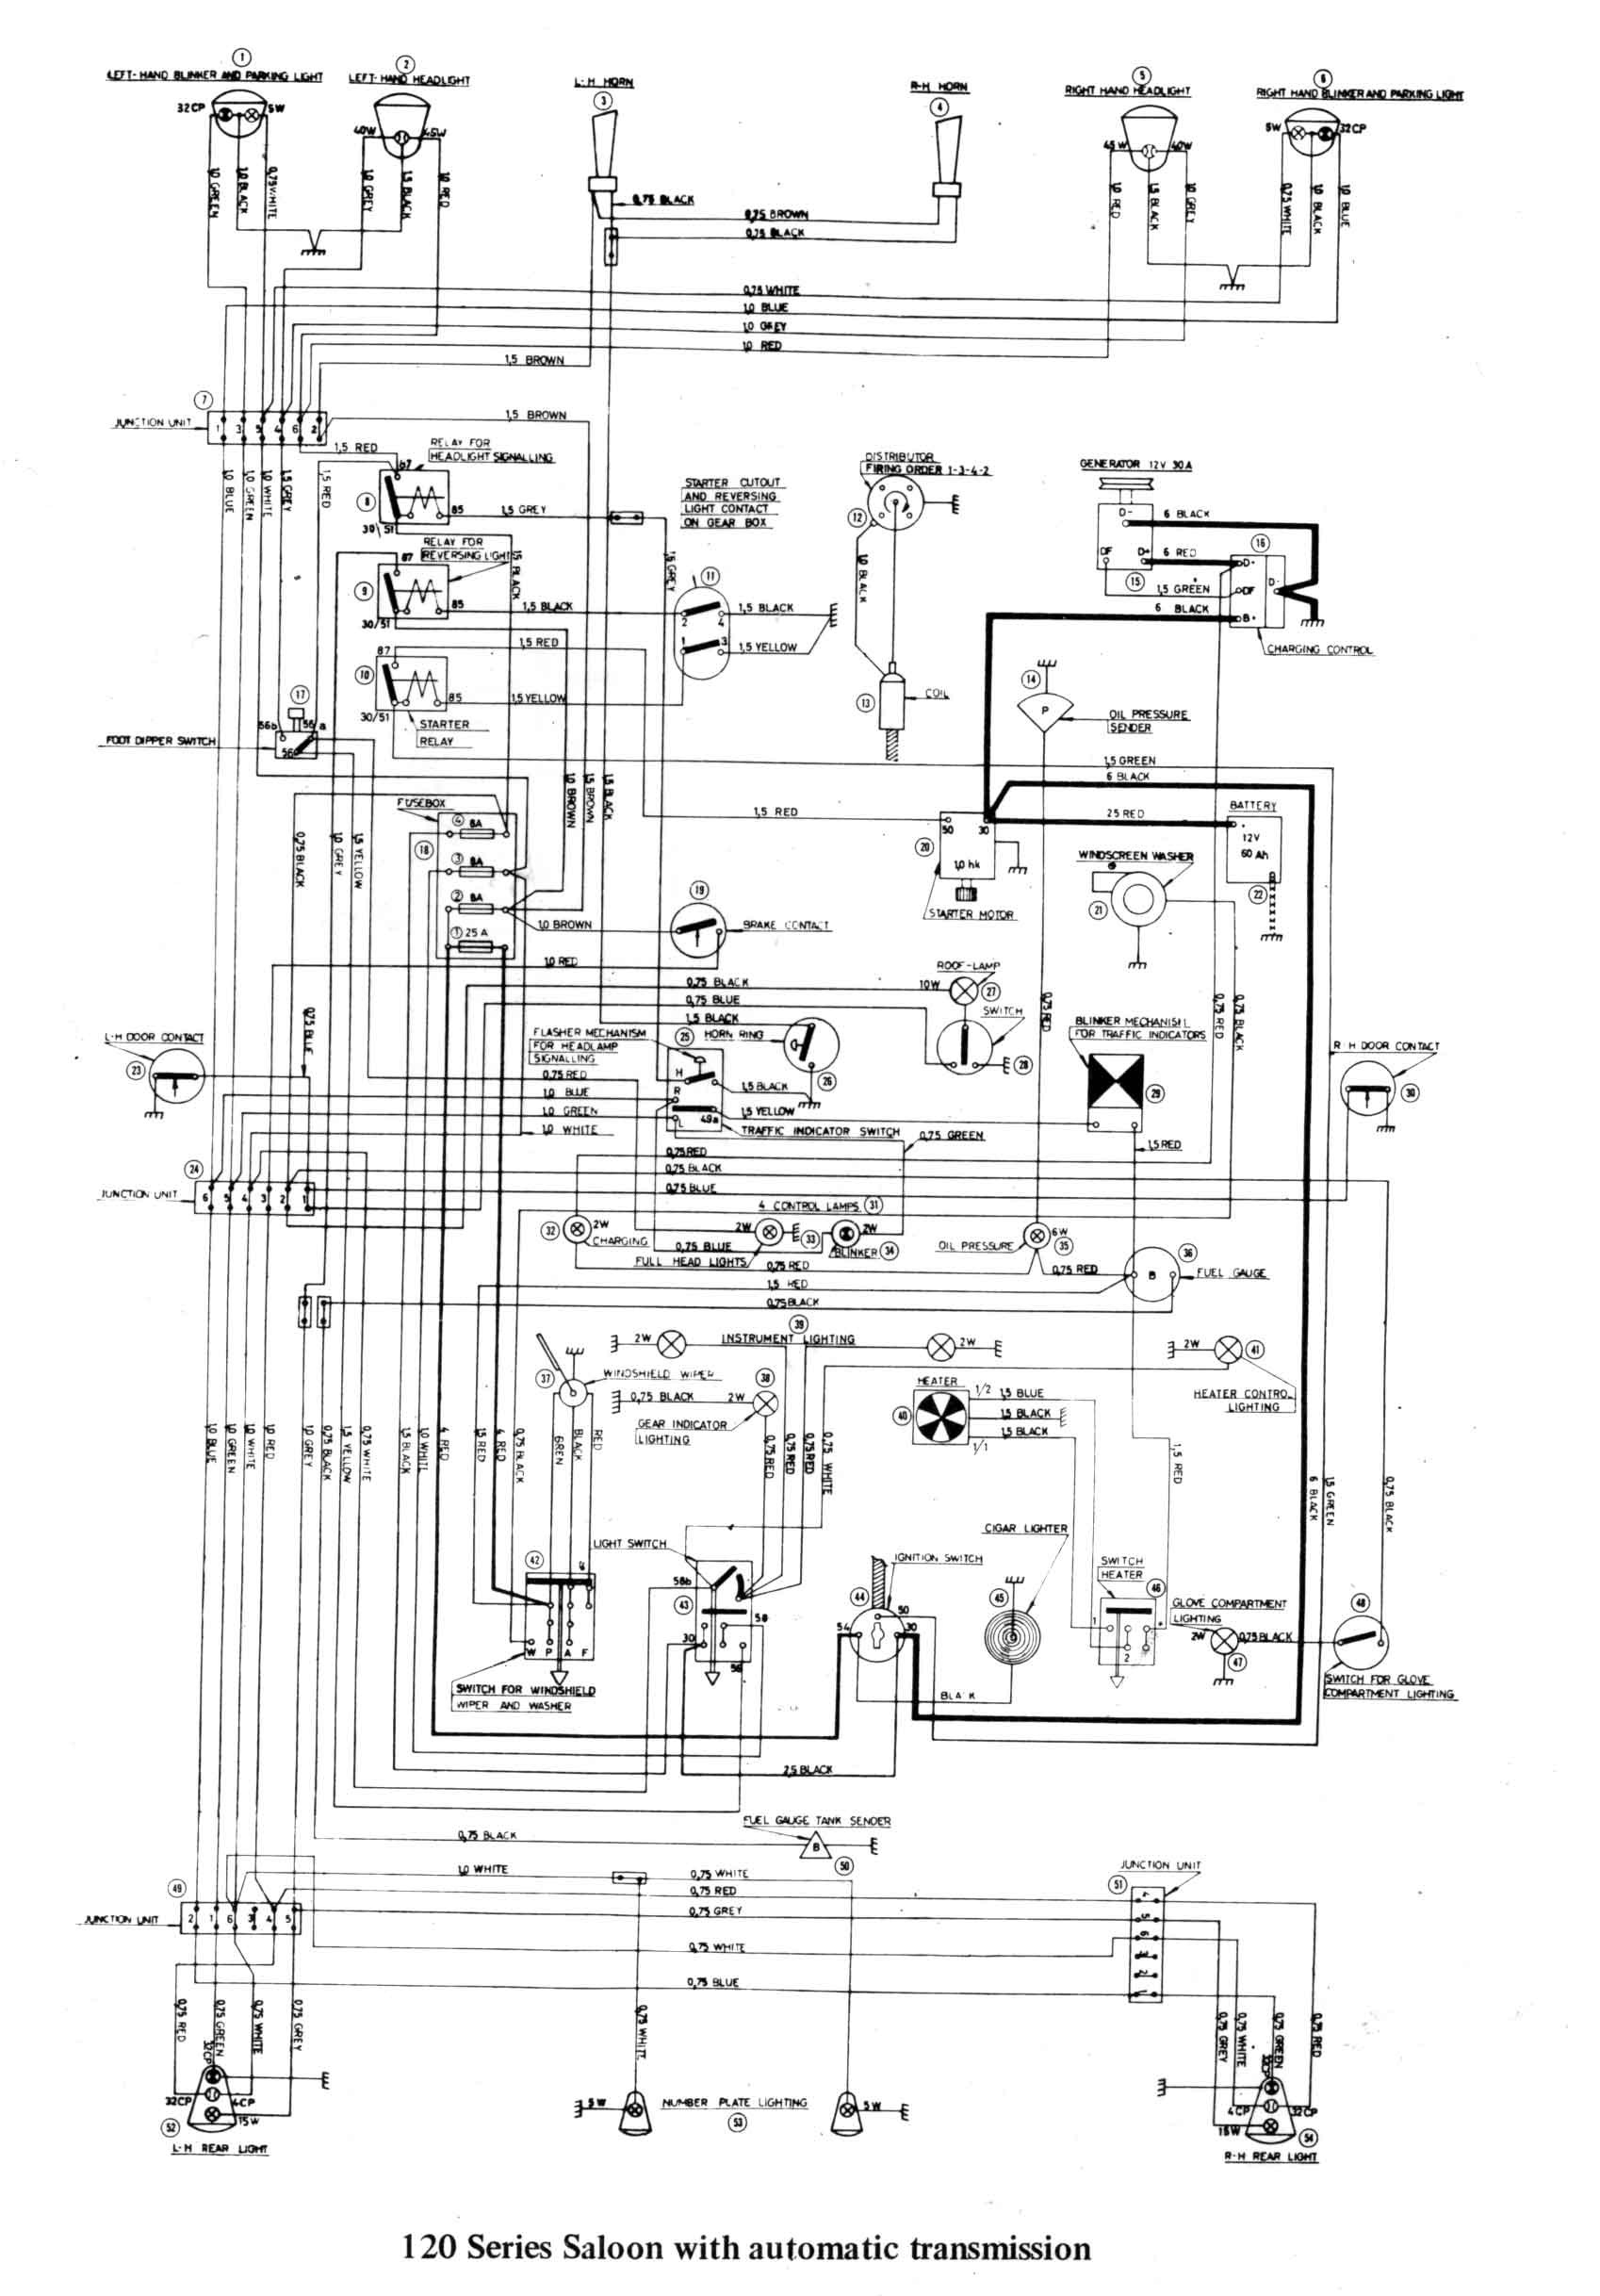 Isuzu Rodeo Engine Diagram Volvo Wiring Diagrams Wiring Diagram Of Isuzu  Rodeo Engine Diagram Autometer Fuel